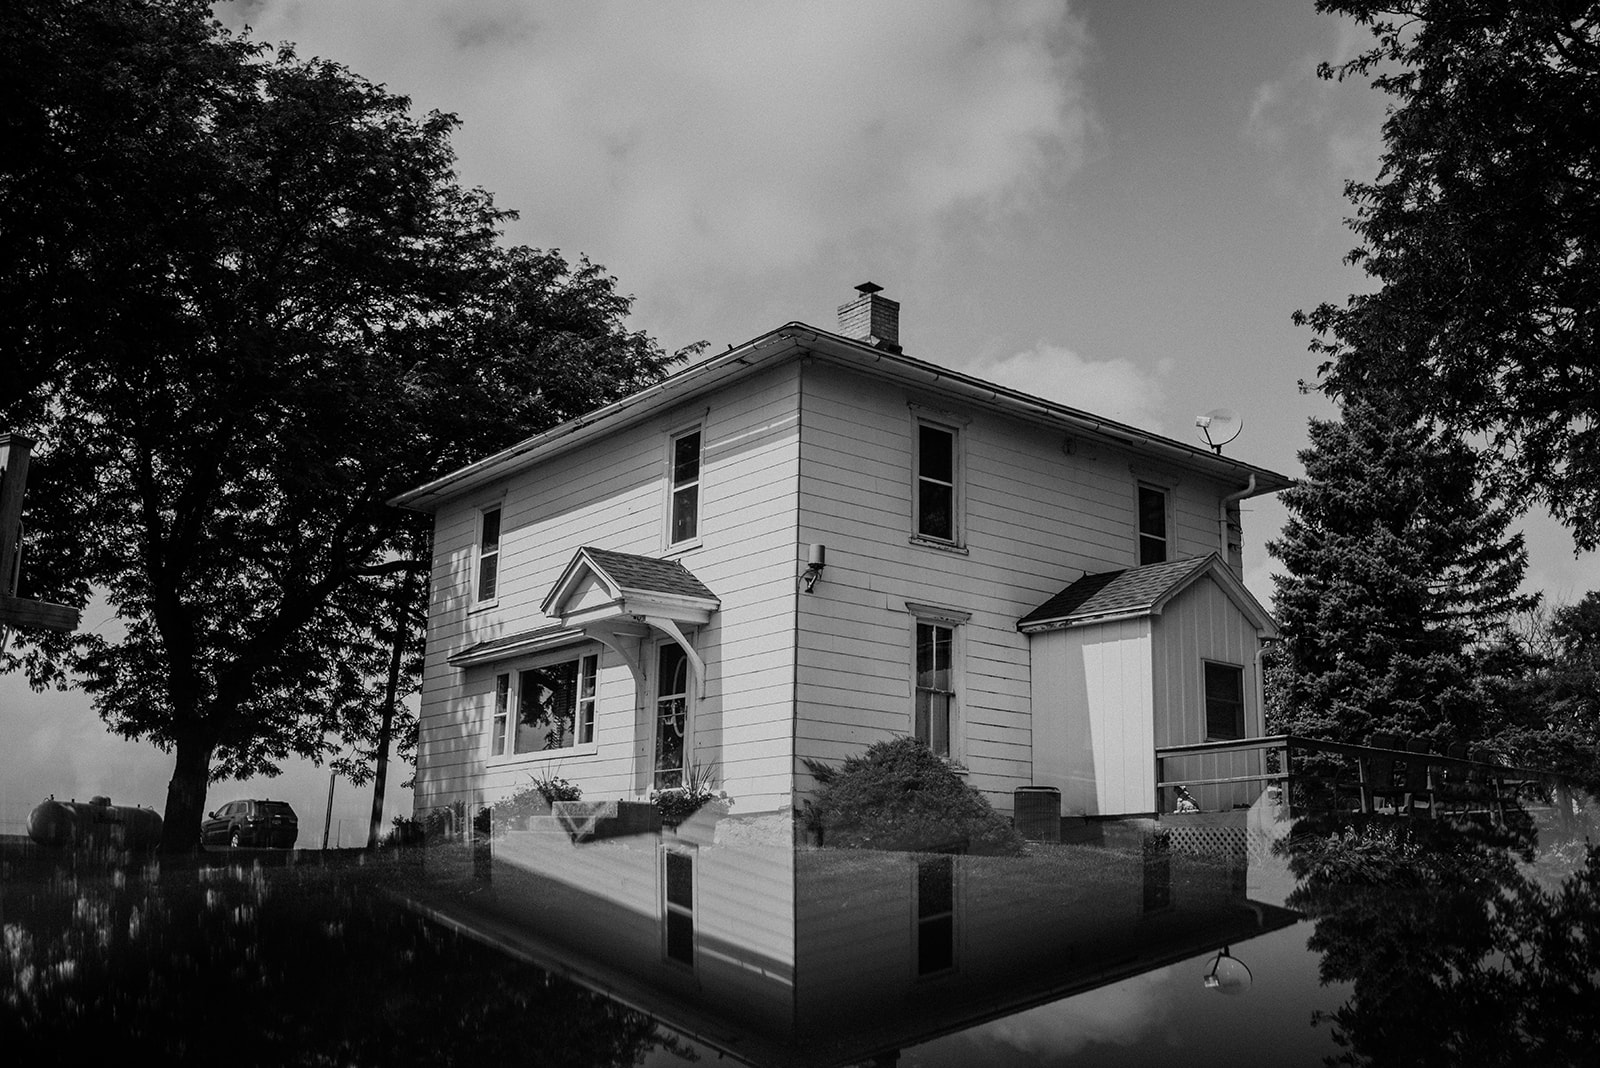 overthevineswisconsinwedding_0010.jpg